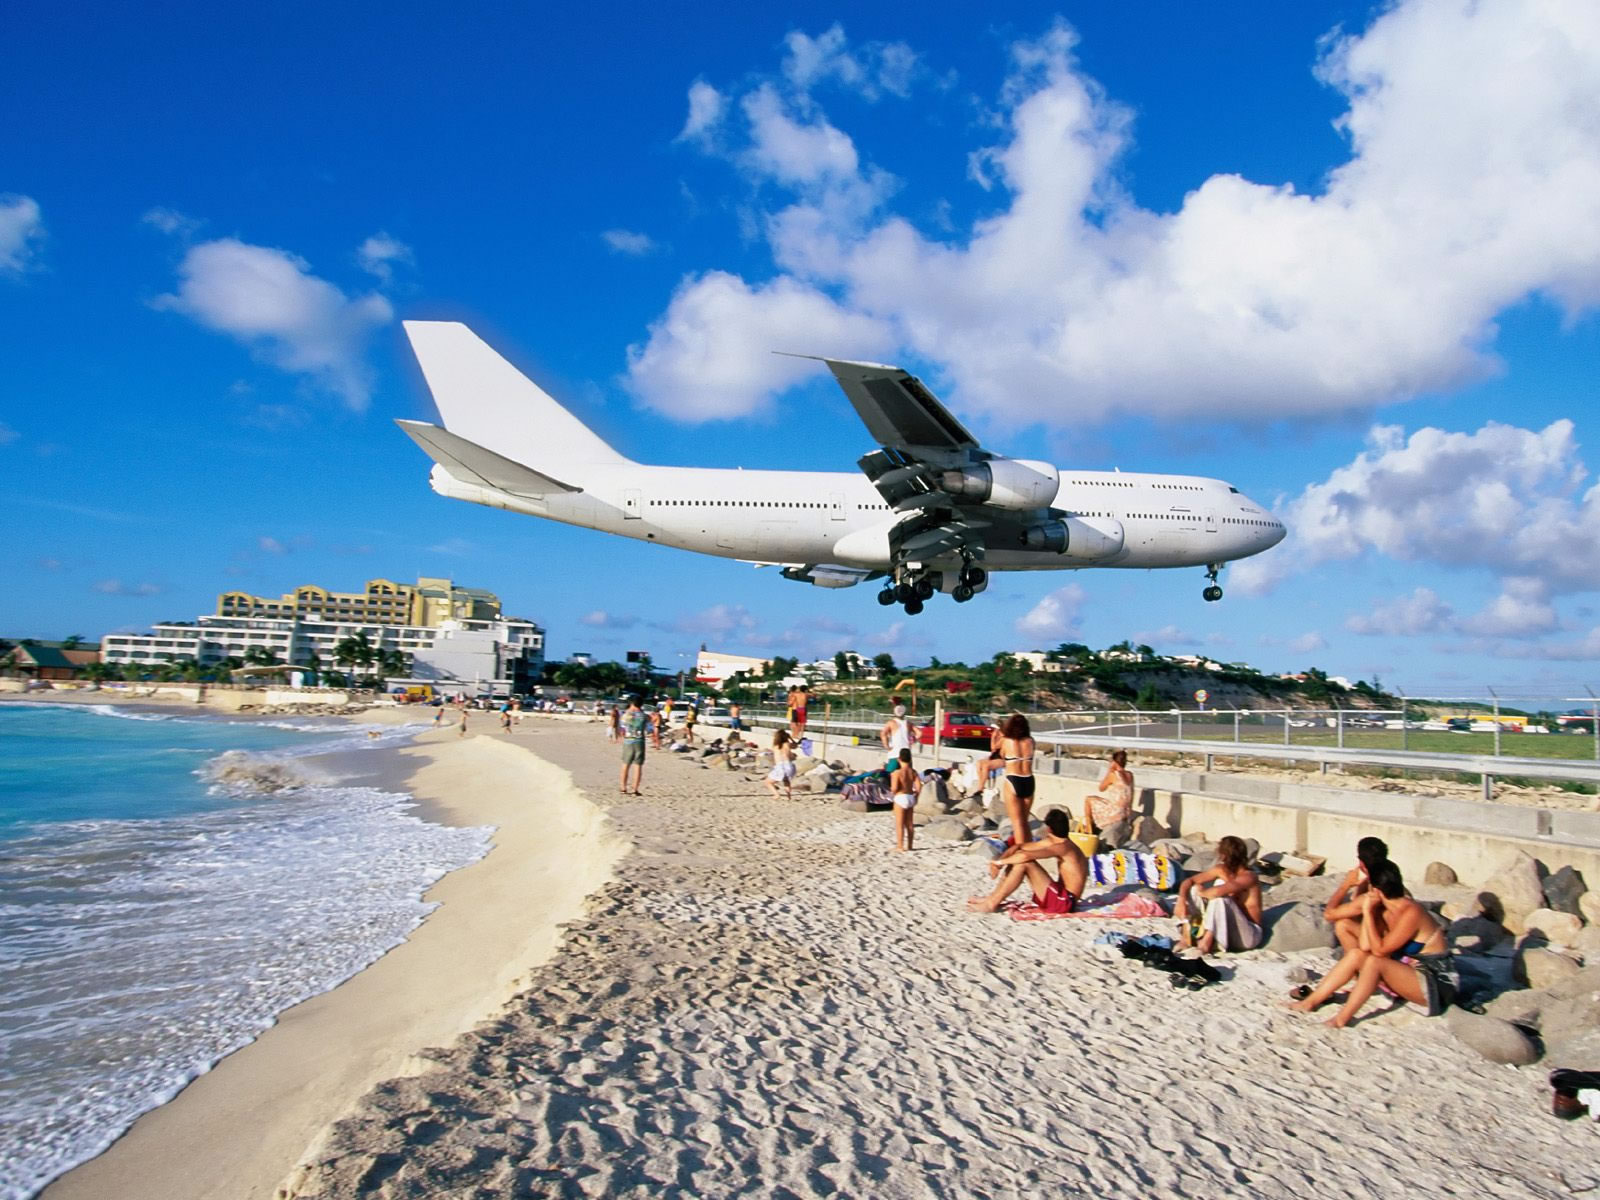 The Most Personal Source For Information About St. Maarten – St. Martin